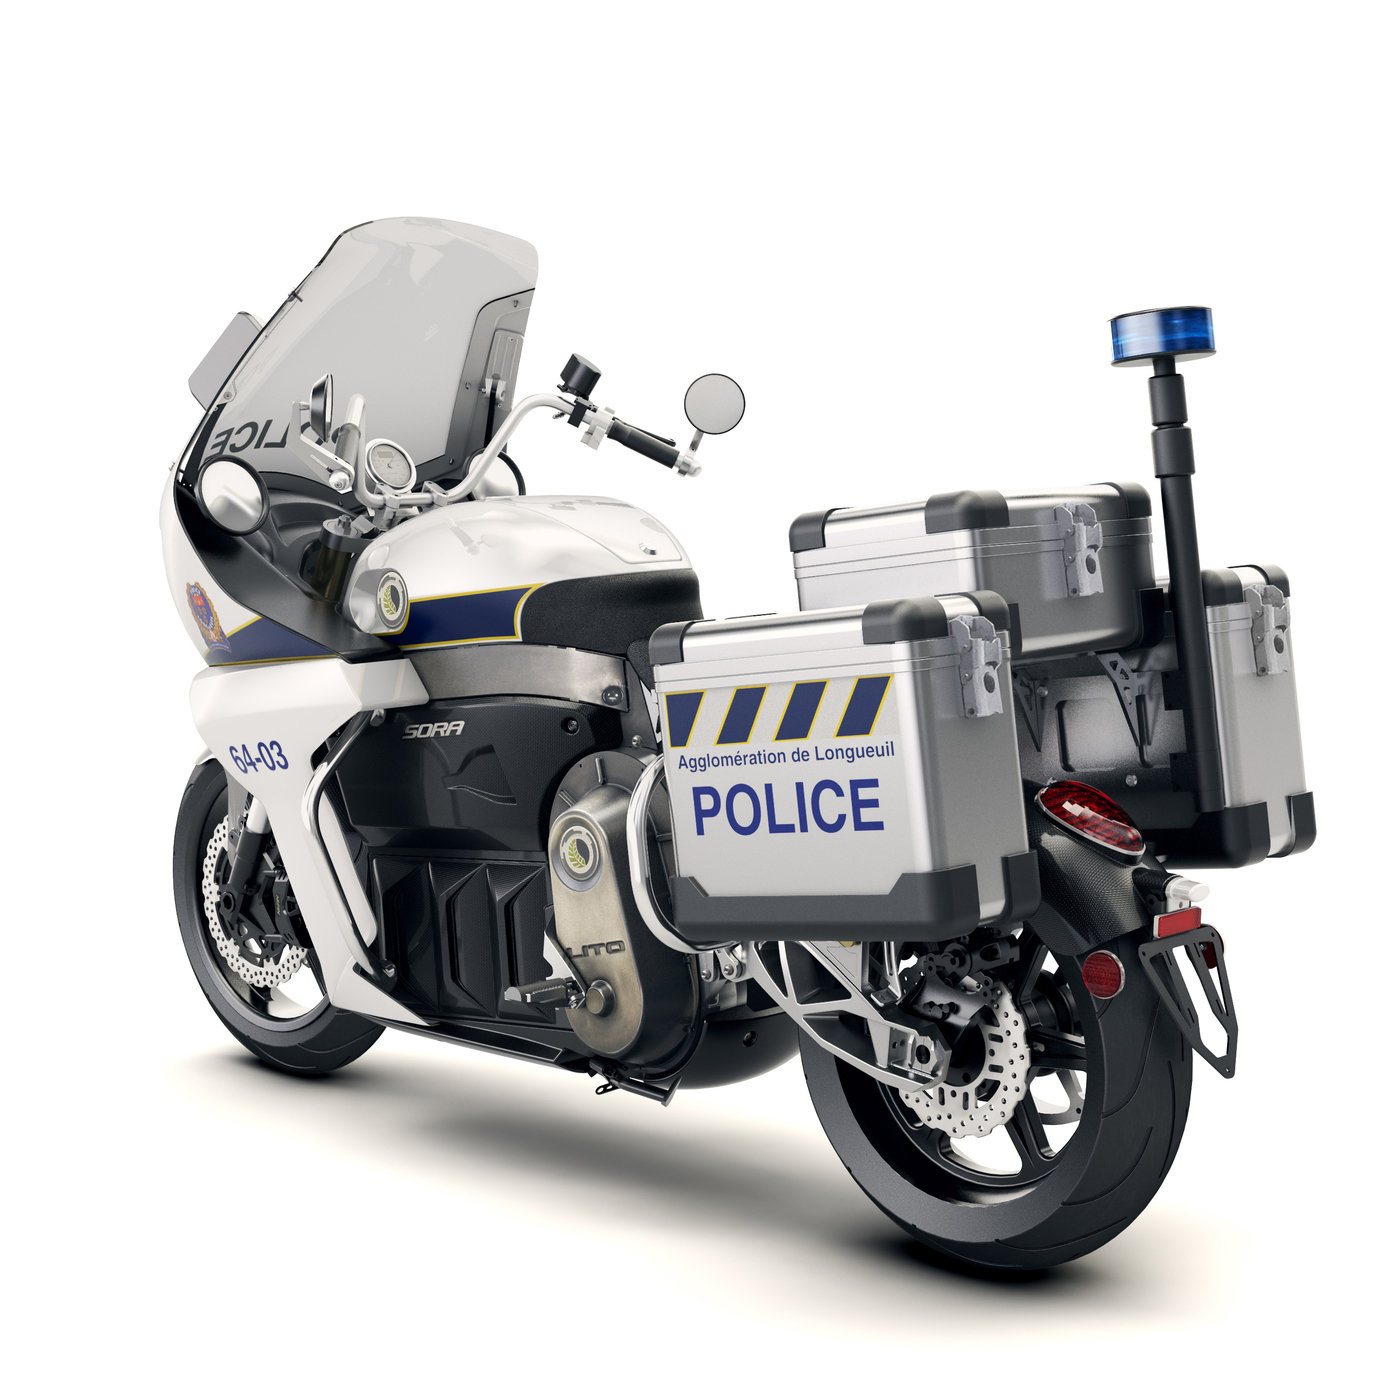 Lito Police Electric Motorcycle By Martin Aub 233 At Coroflot Com